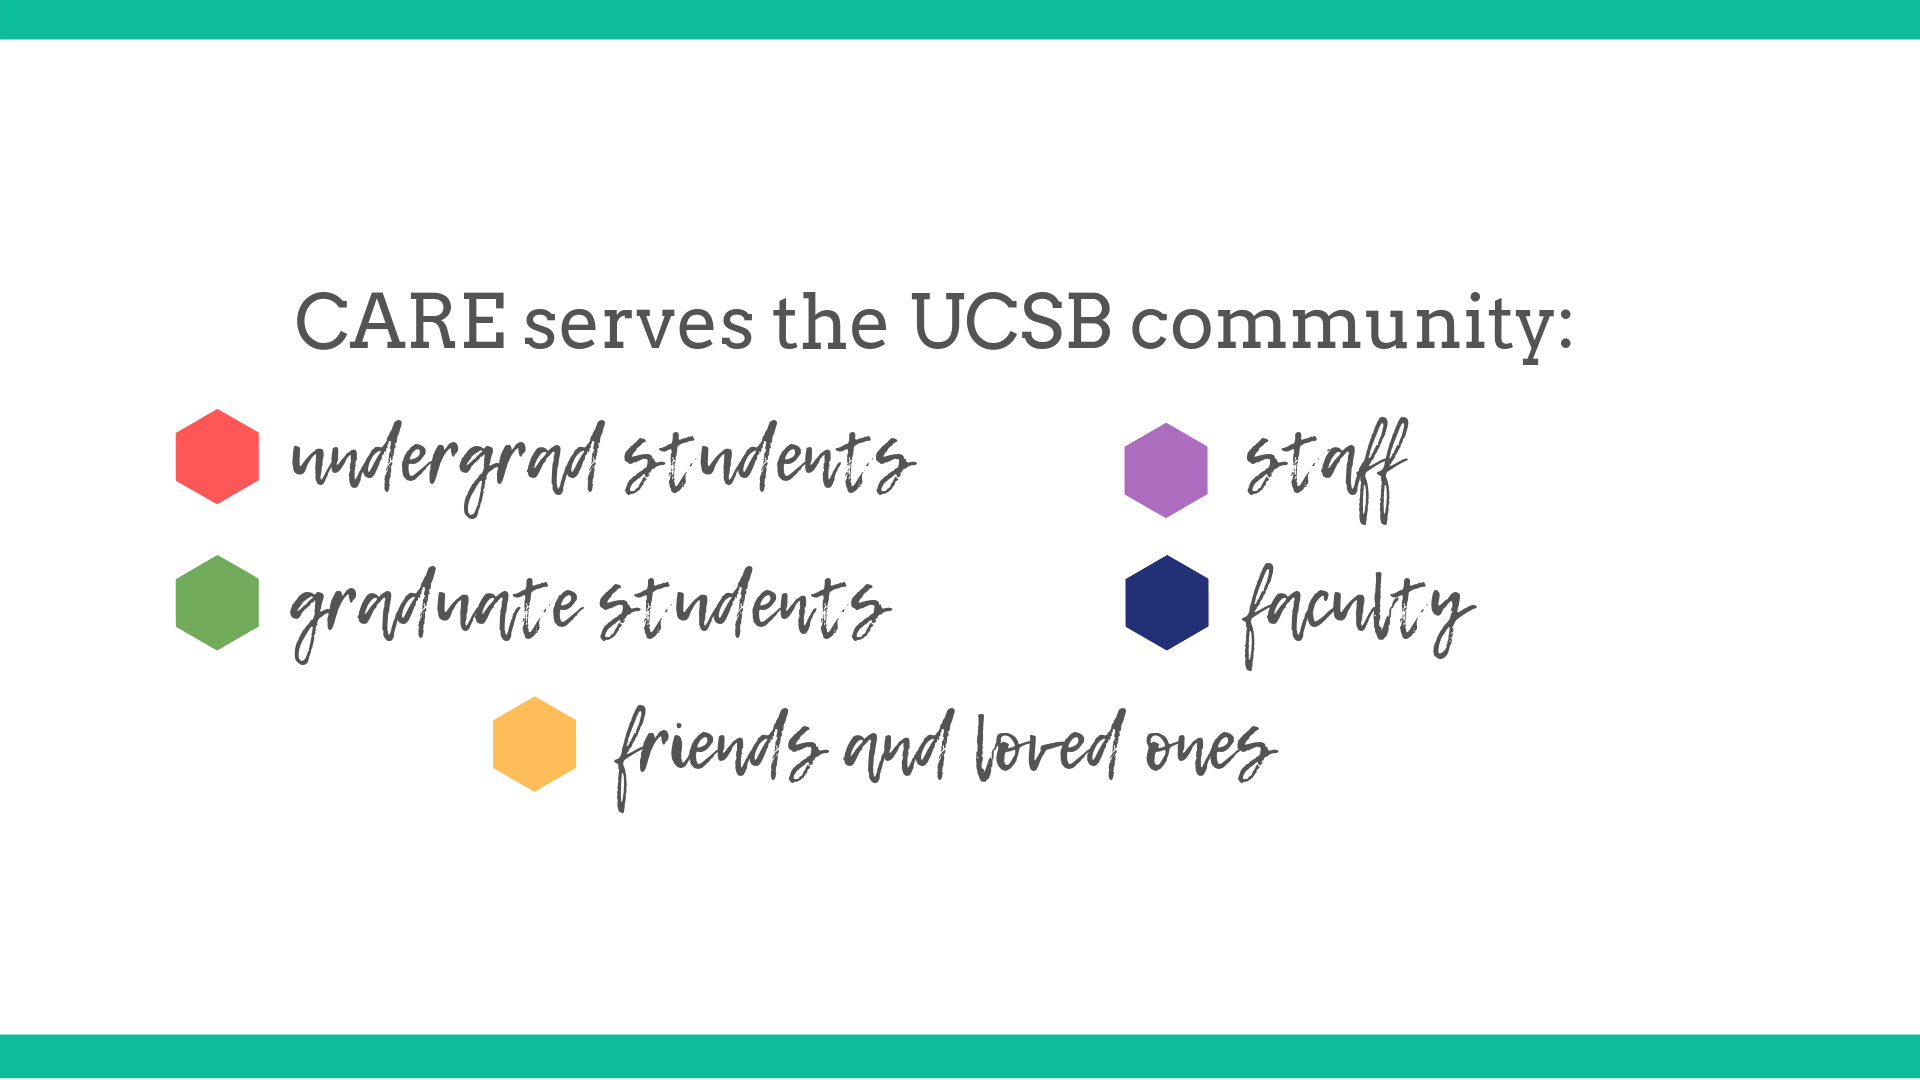 CARE serves the UCSB community